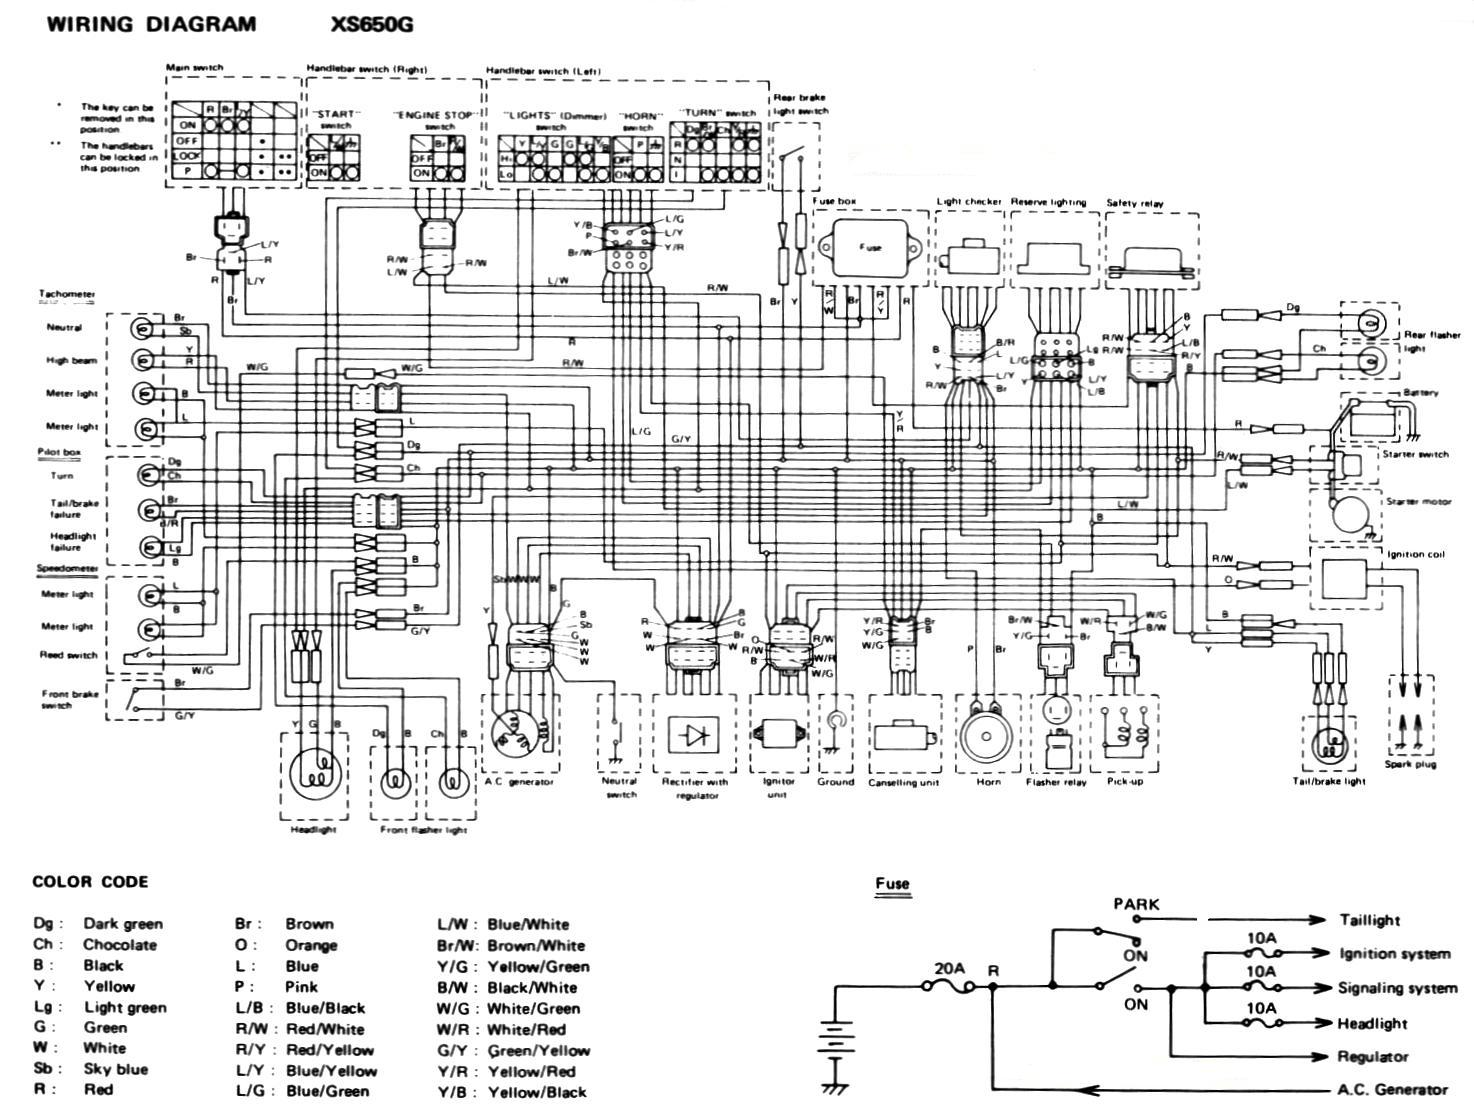 13930b wiring diagram suzuki ts 125 | wiring resources  wiring resources